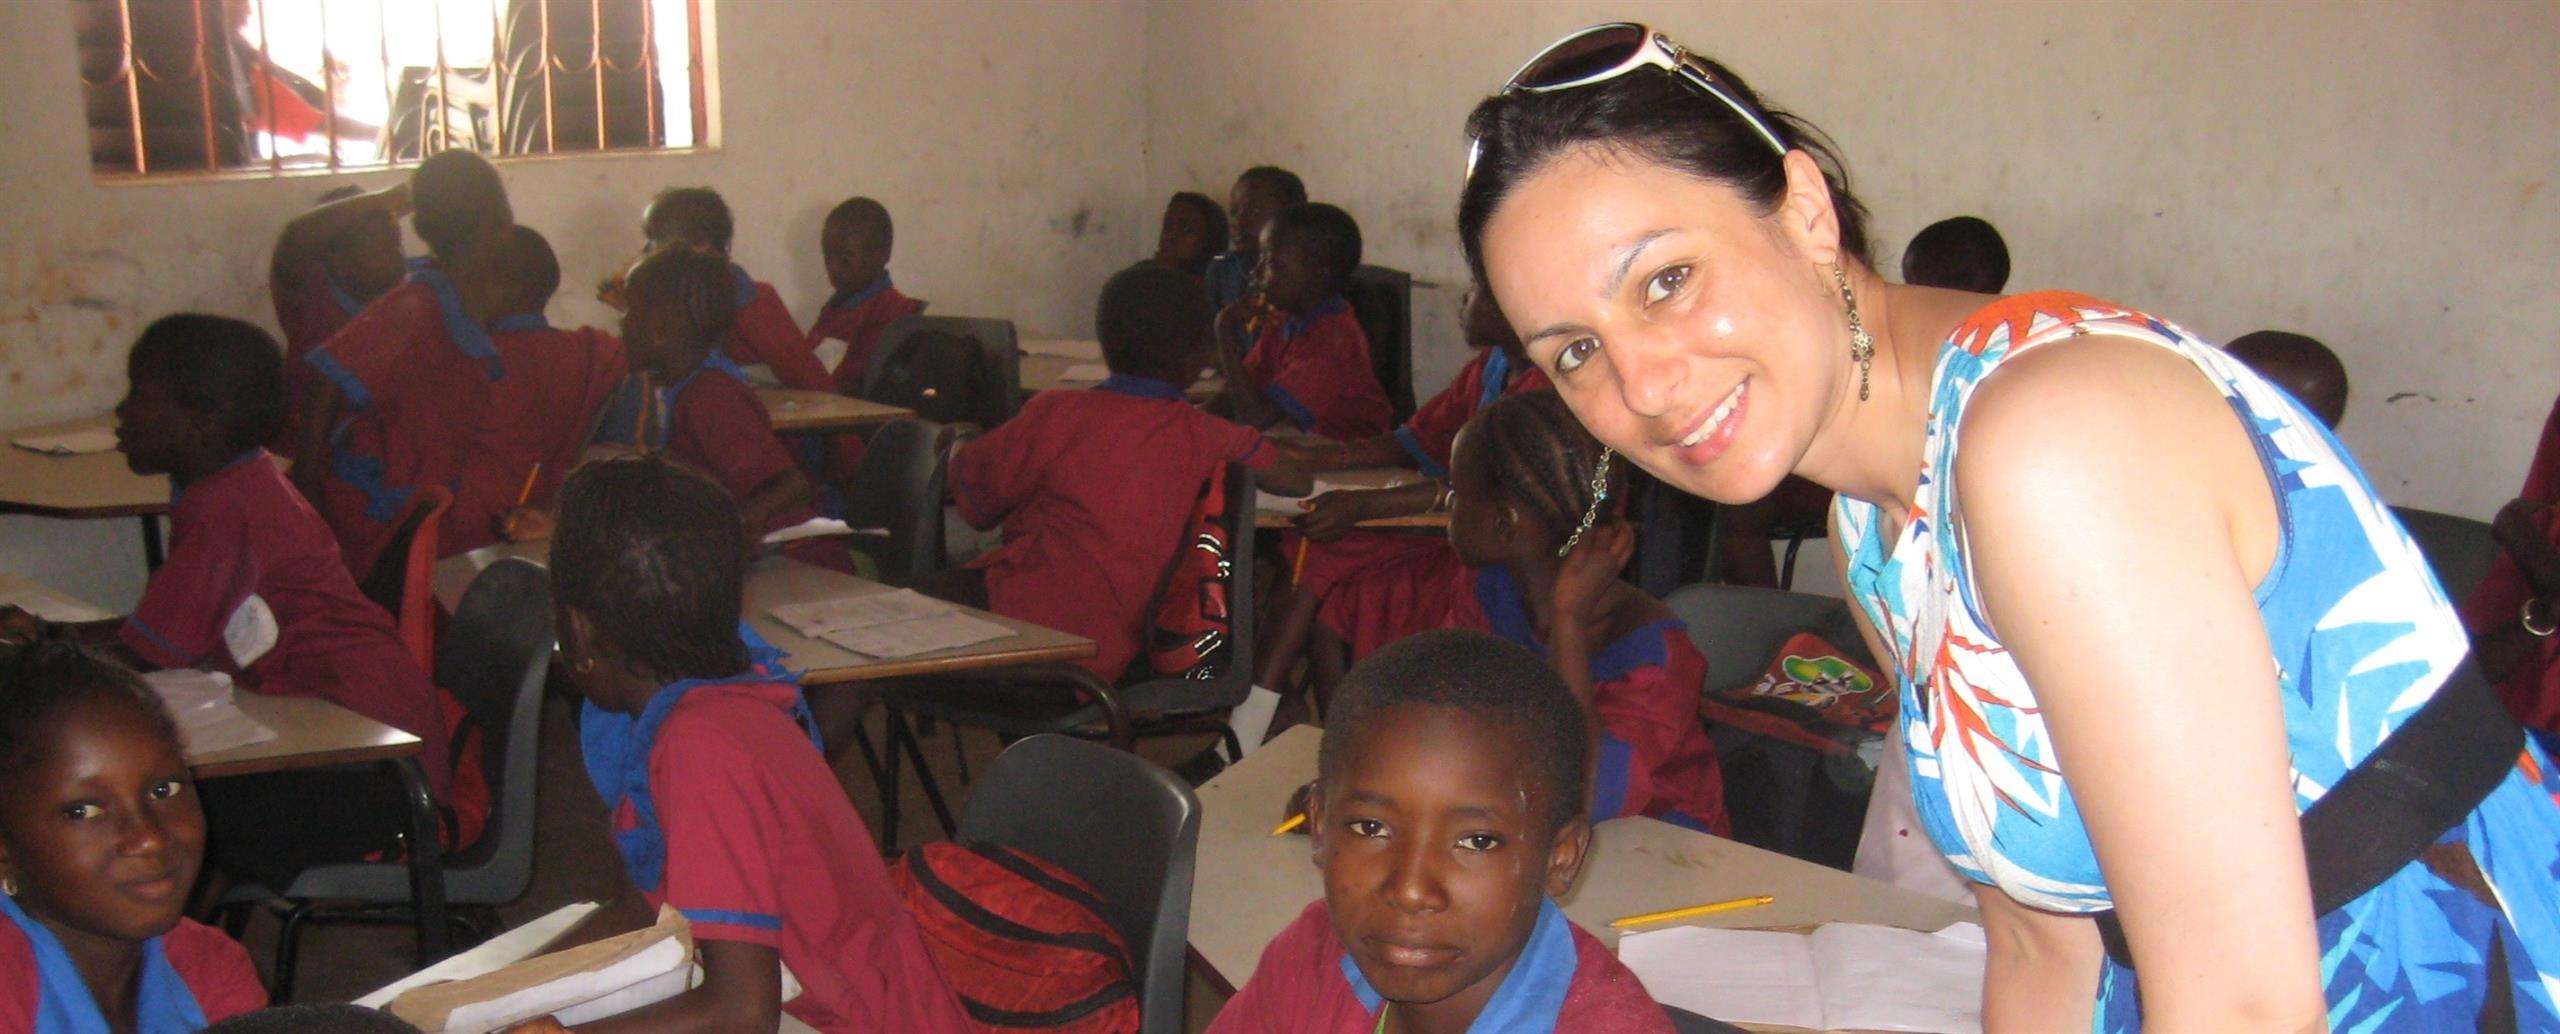 A trip to Gambia where Samia visited the local school children